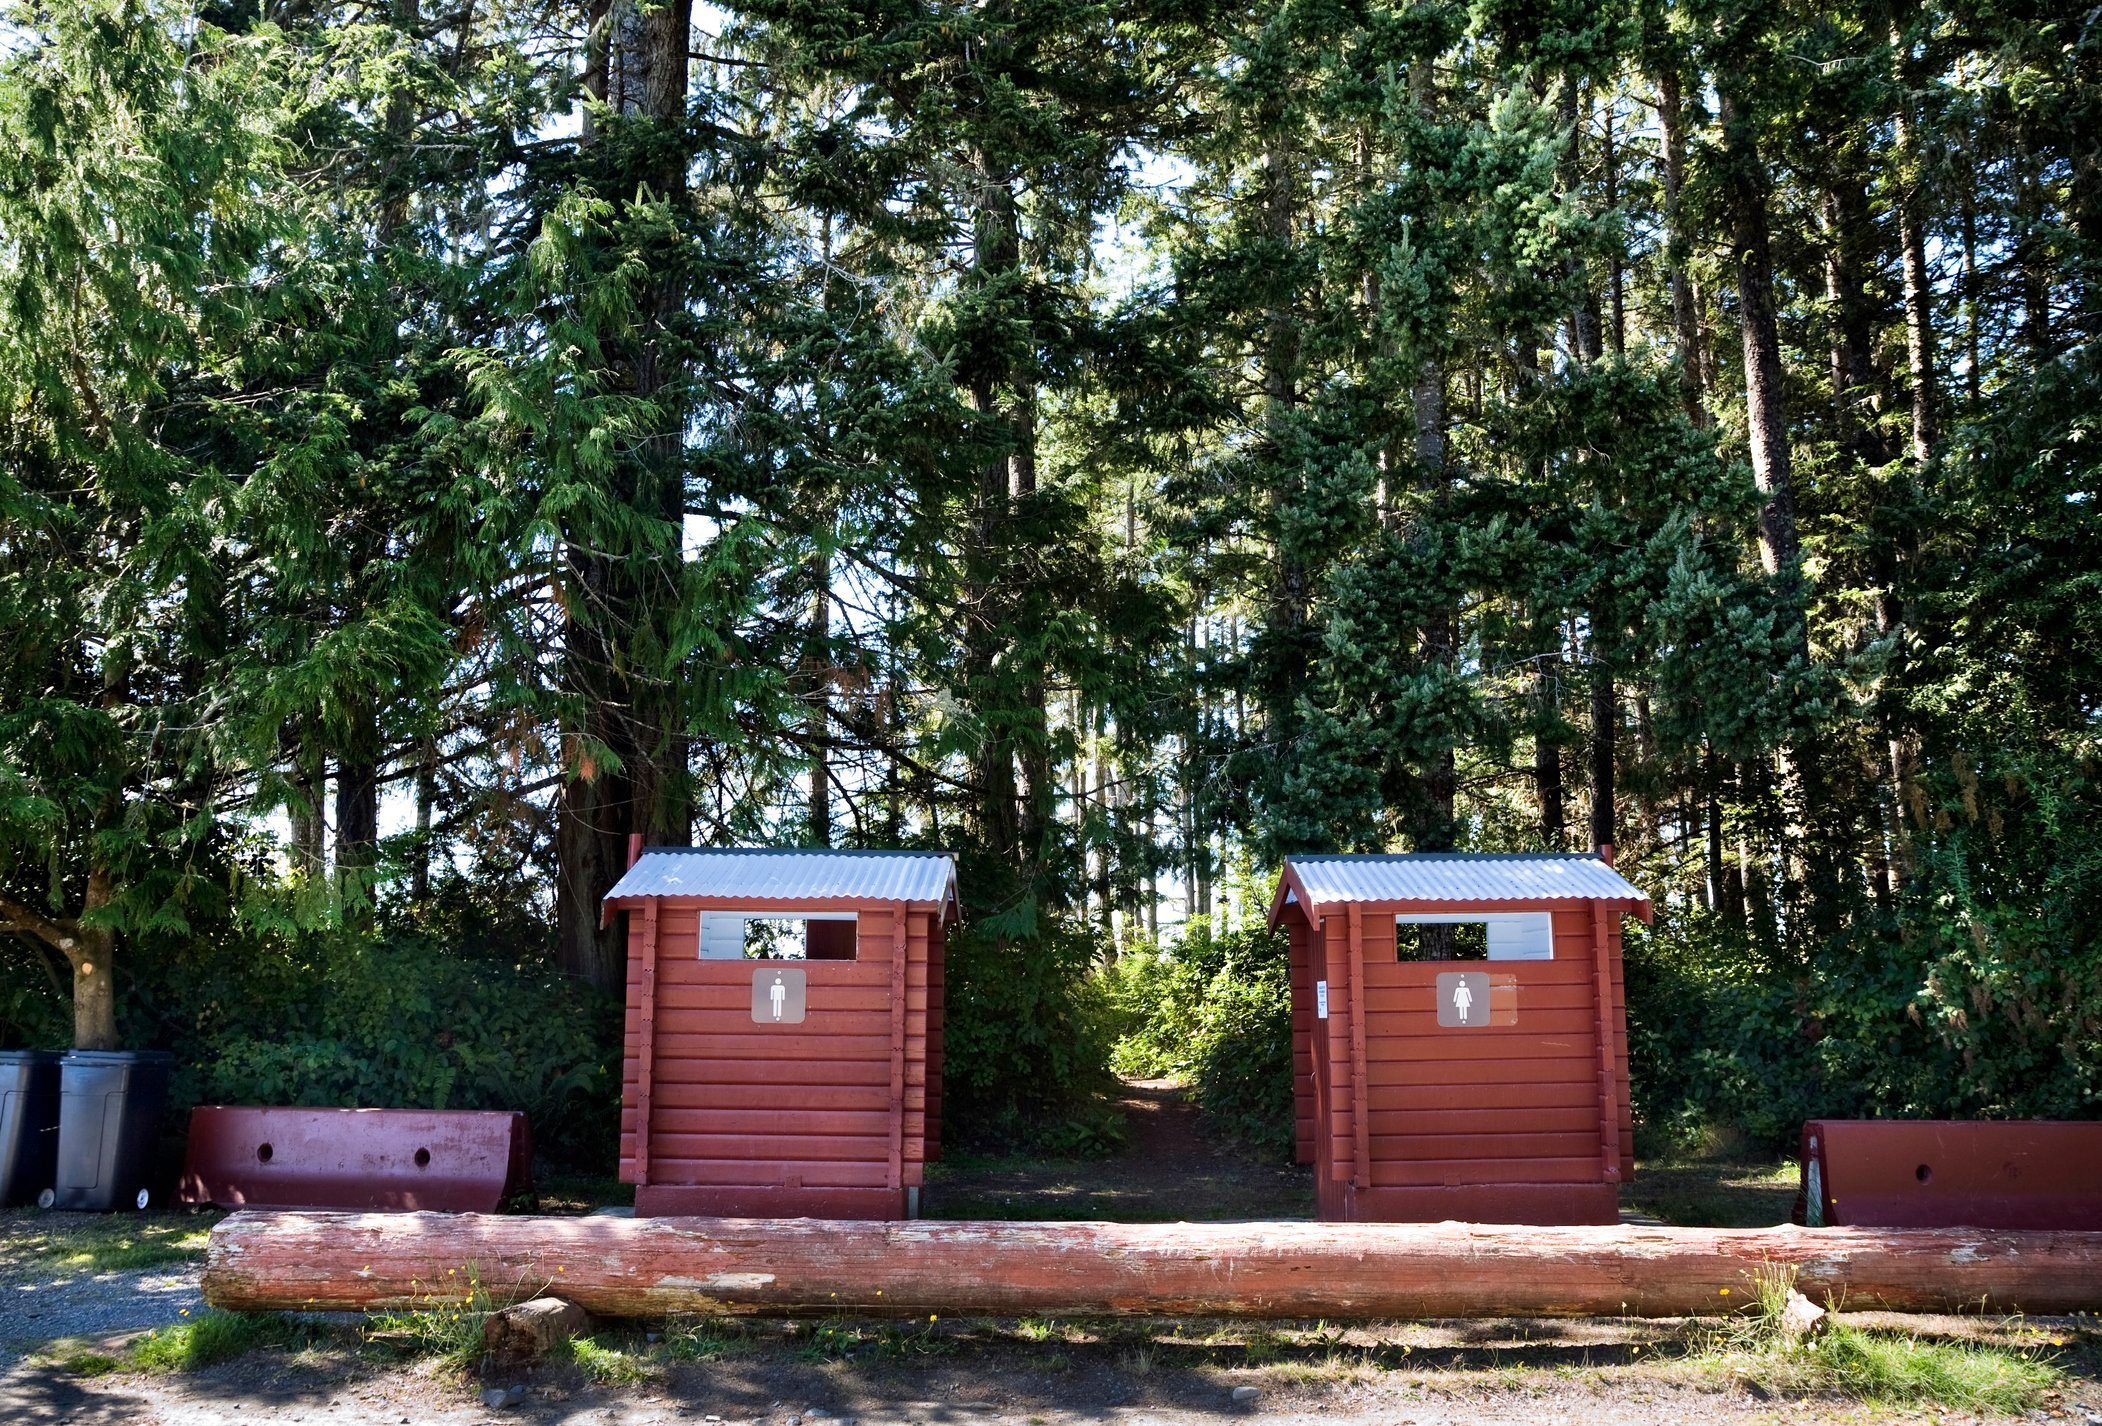 Public Toilets in Campground